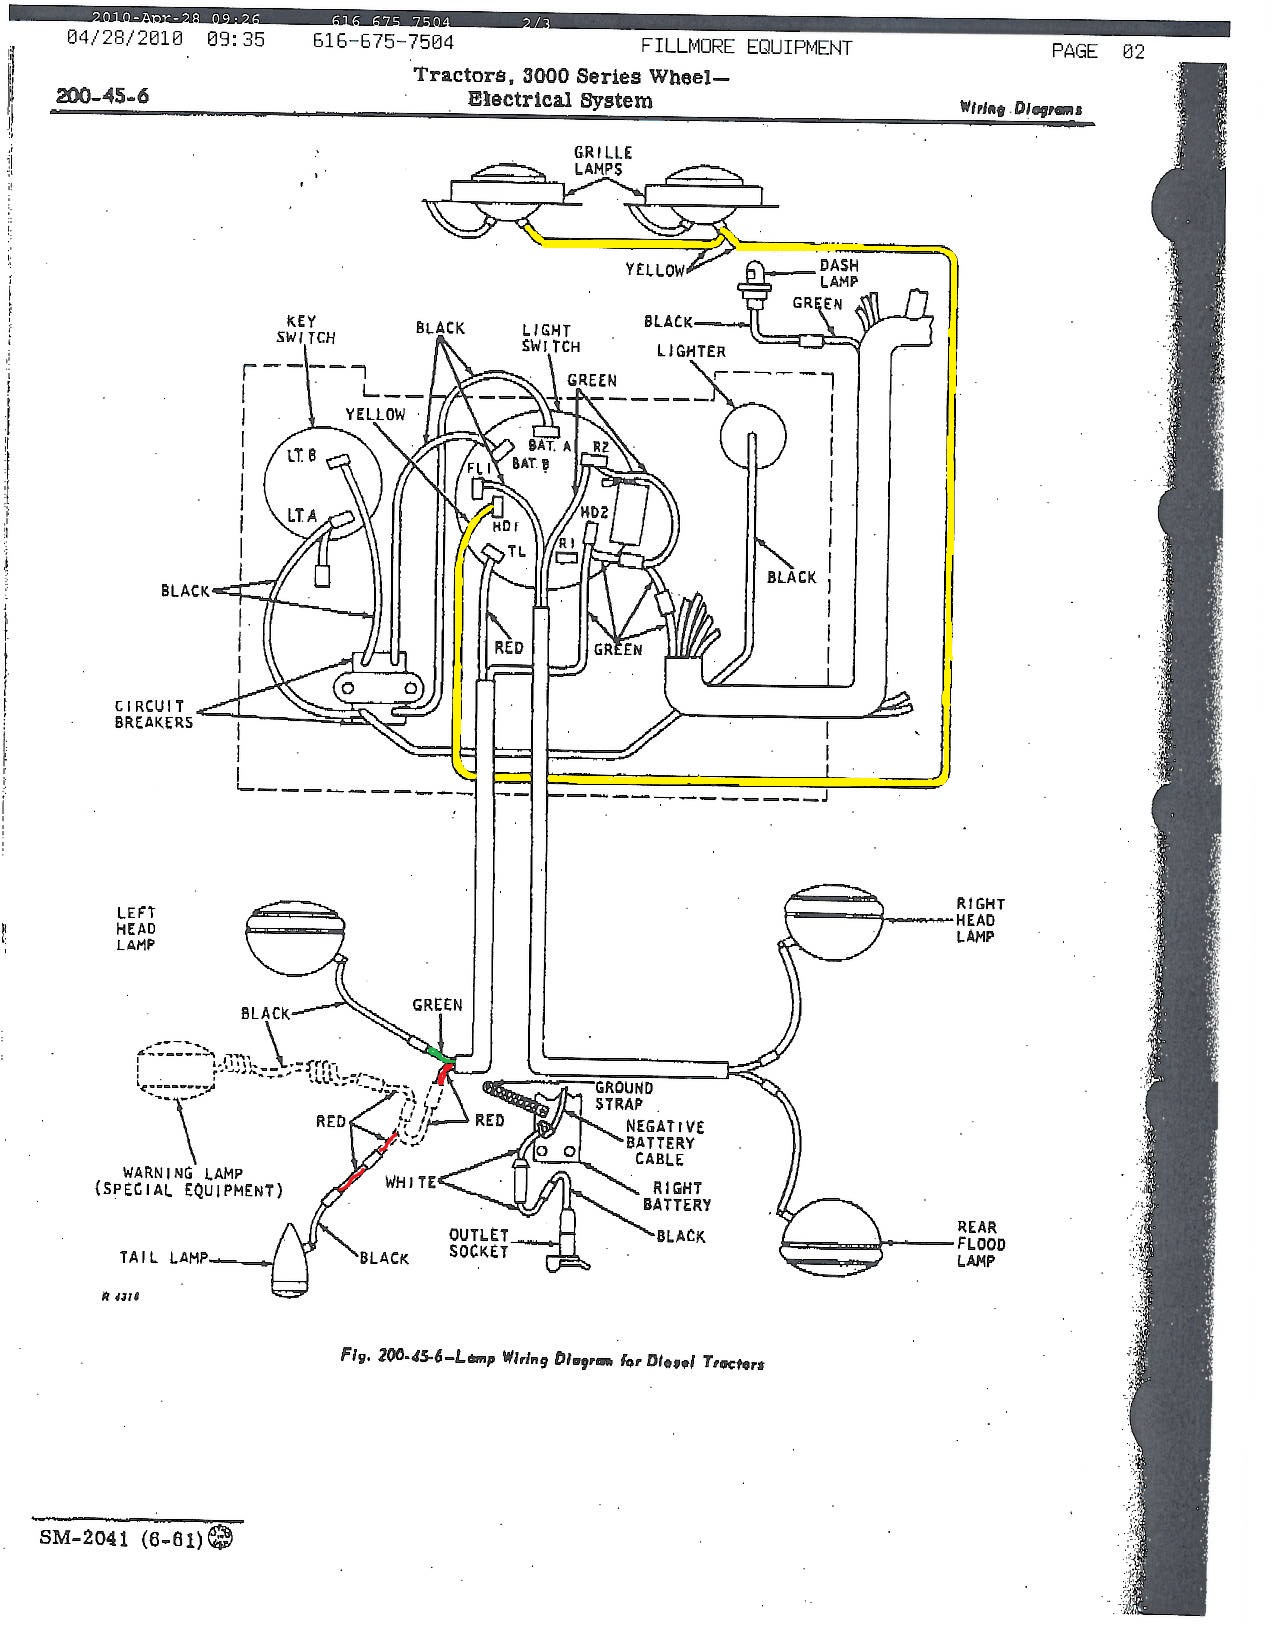 hight resolution of  jd starting circuits colored jpg and jd wire paths jpg are perfectly fine diagrams from john deere if you buy their wiring harnesses for 550 plus